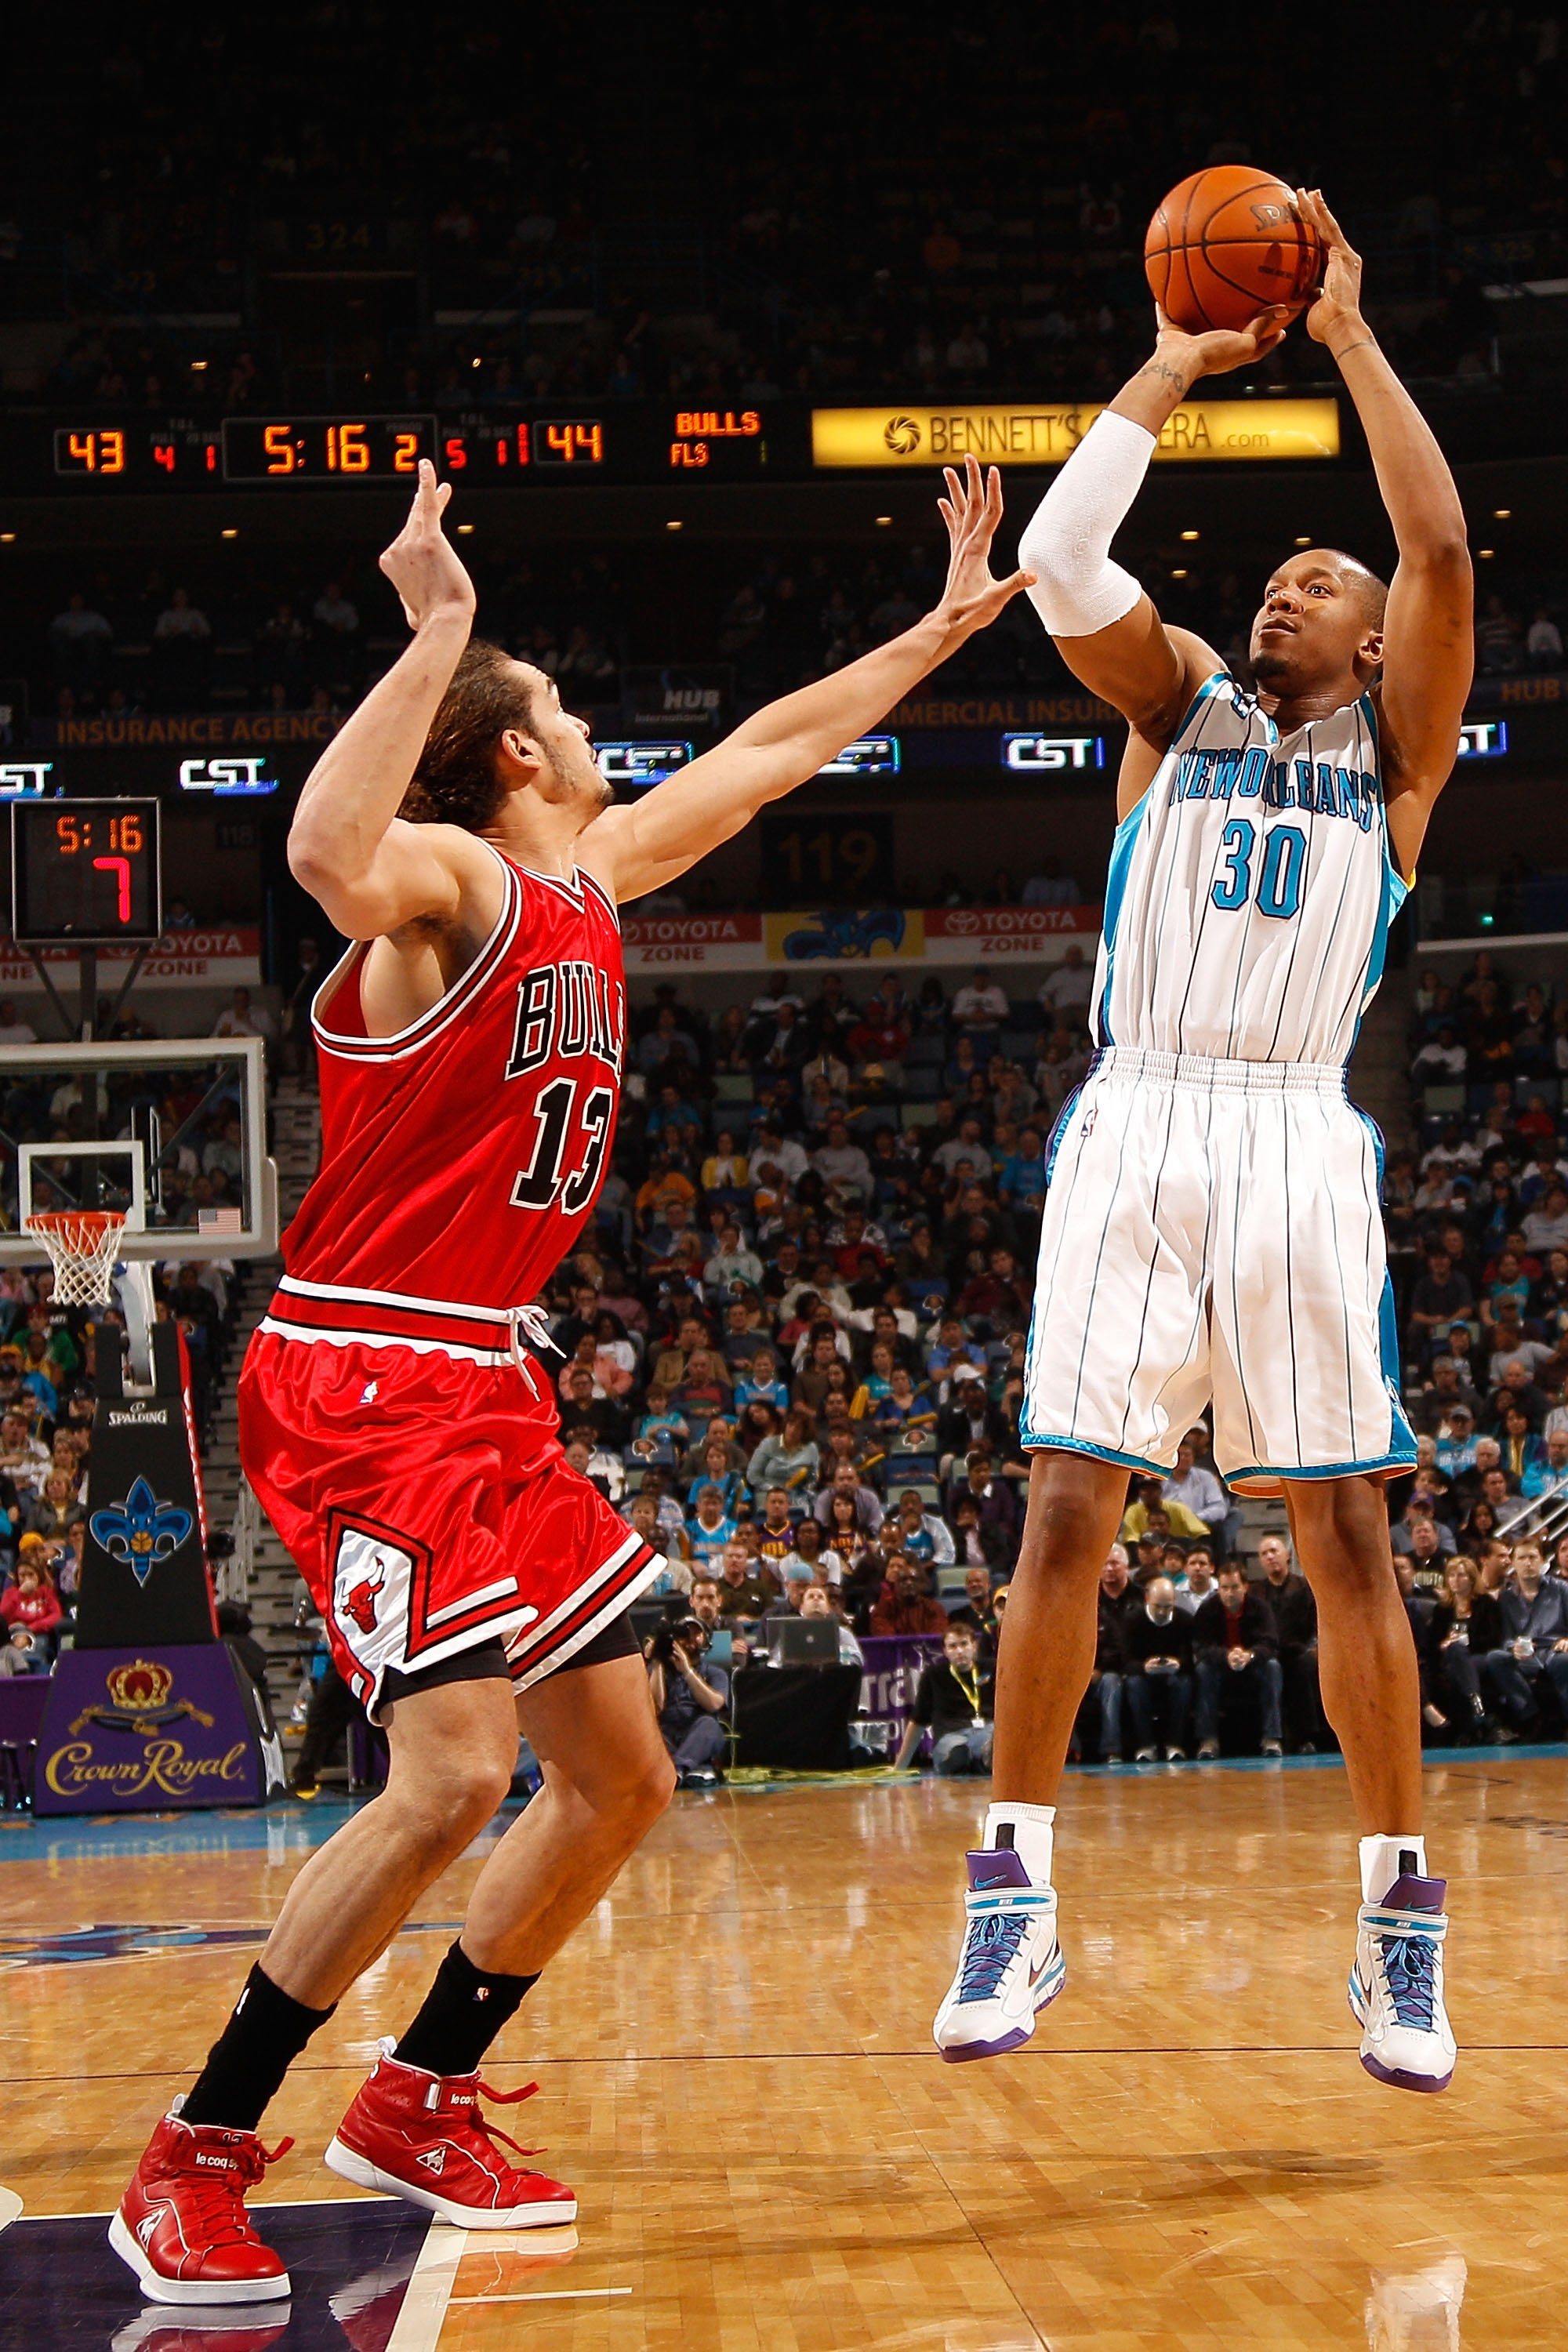 NEW ORLEANS - JANUARY 29:  David West #3 of the New Orleans Hornets shoots the ball over Joakim Noah #13 of the Chicago Bulls at the New Orleans Arena on January 29, 2010 in New Orleans, Louisiana.   NOTE TO USER: User expressly acknowledges and agrees th